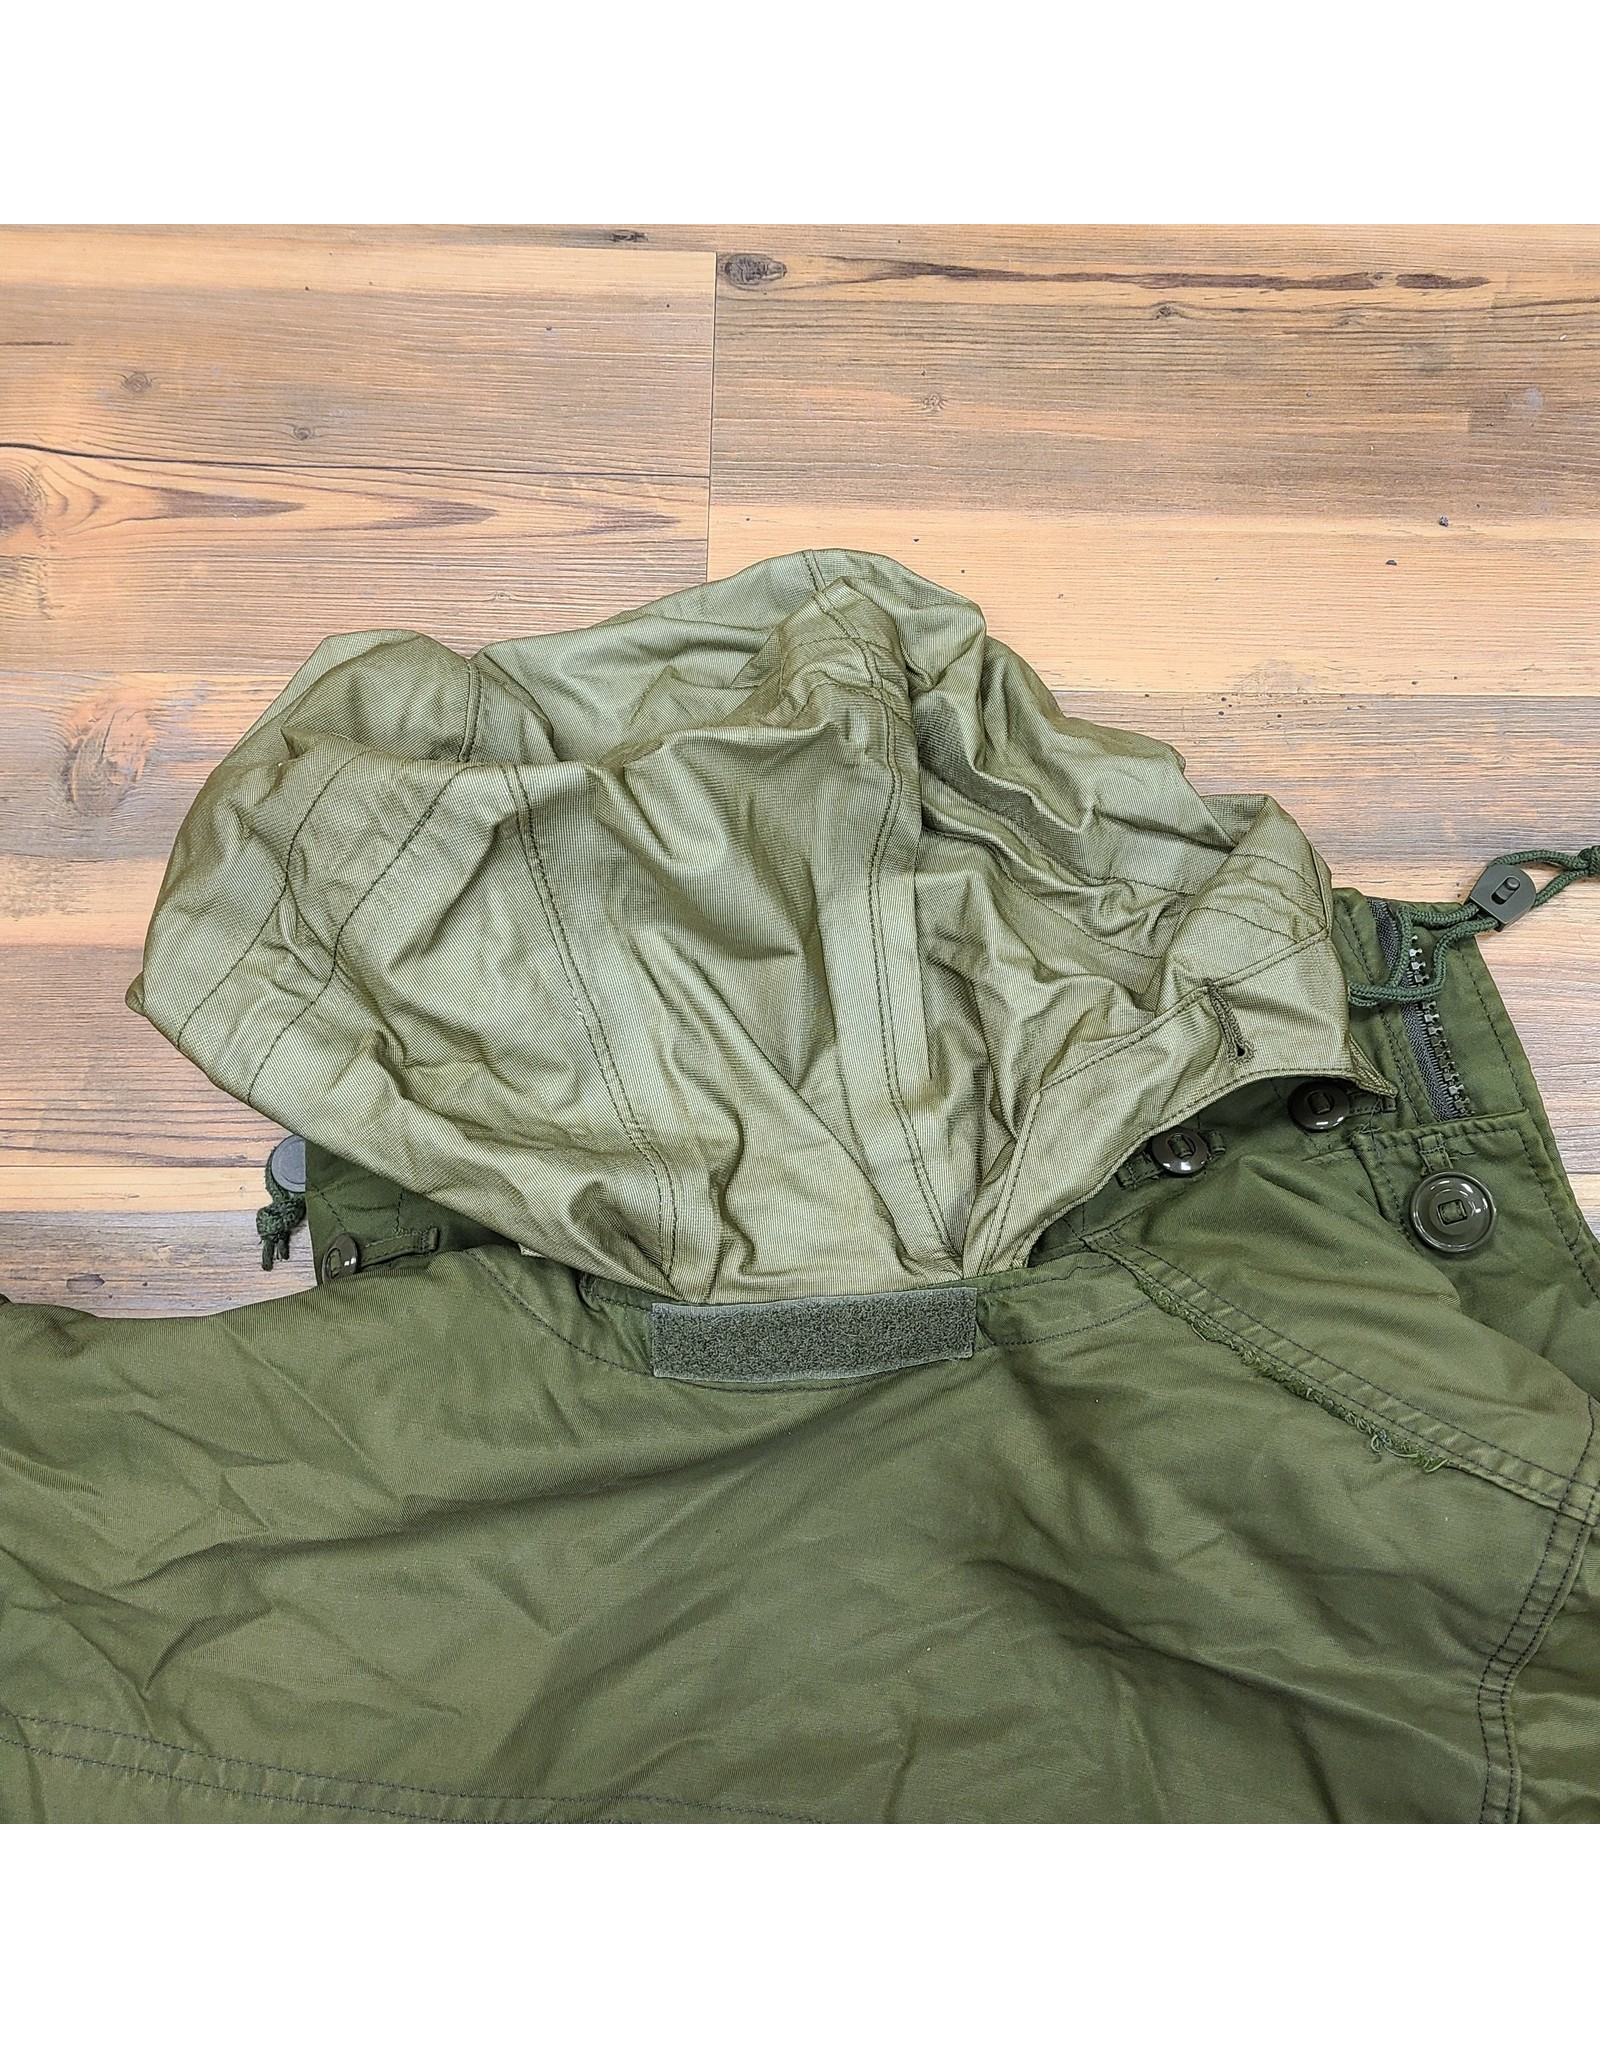 CANADIAN SURPLUS CANADIAN GORE TEX COMBAT COAT